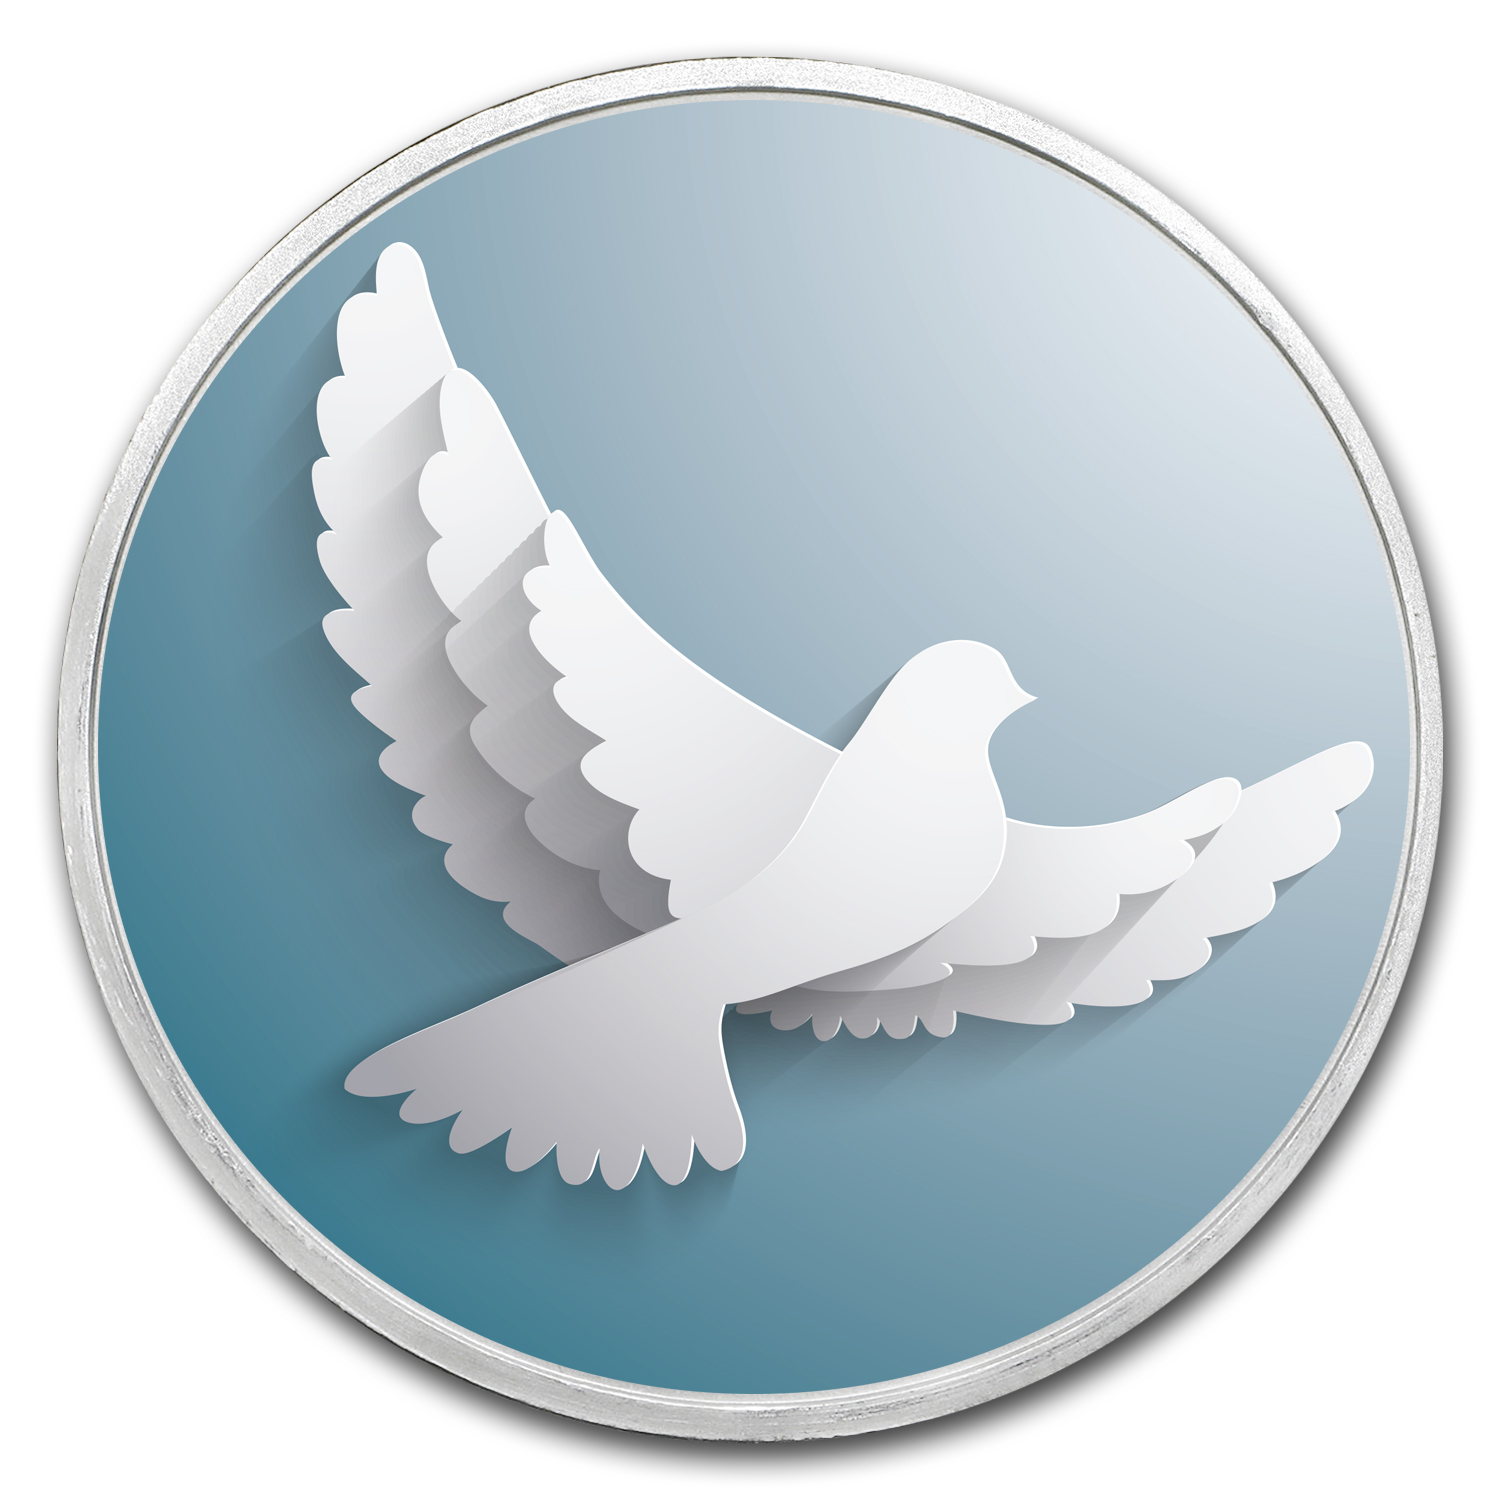 1 oz Silver Colorized Round - APMEX (Dove of Peace)